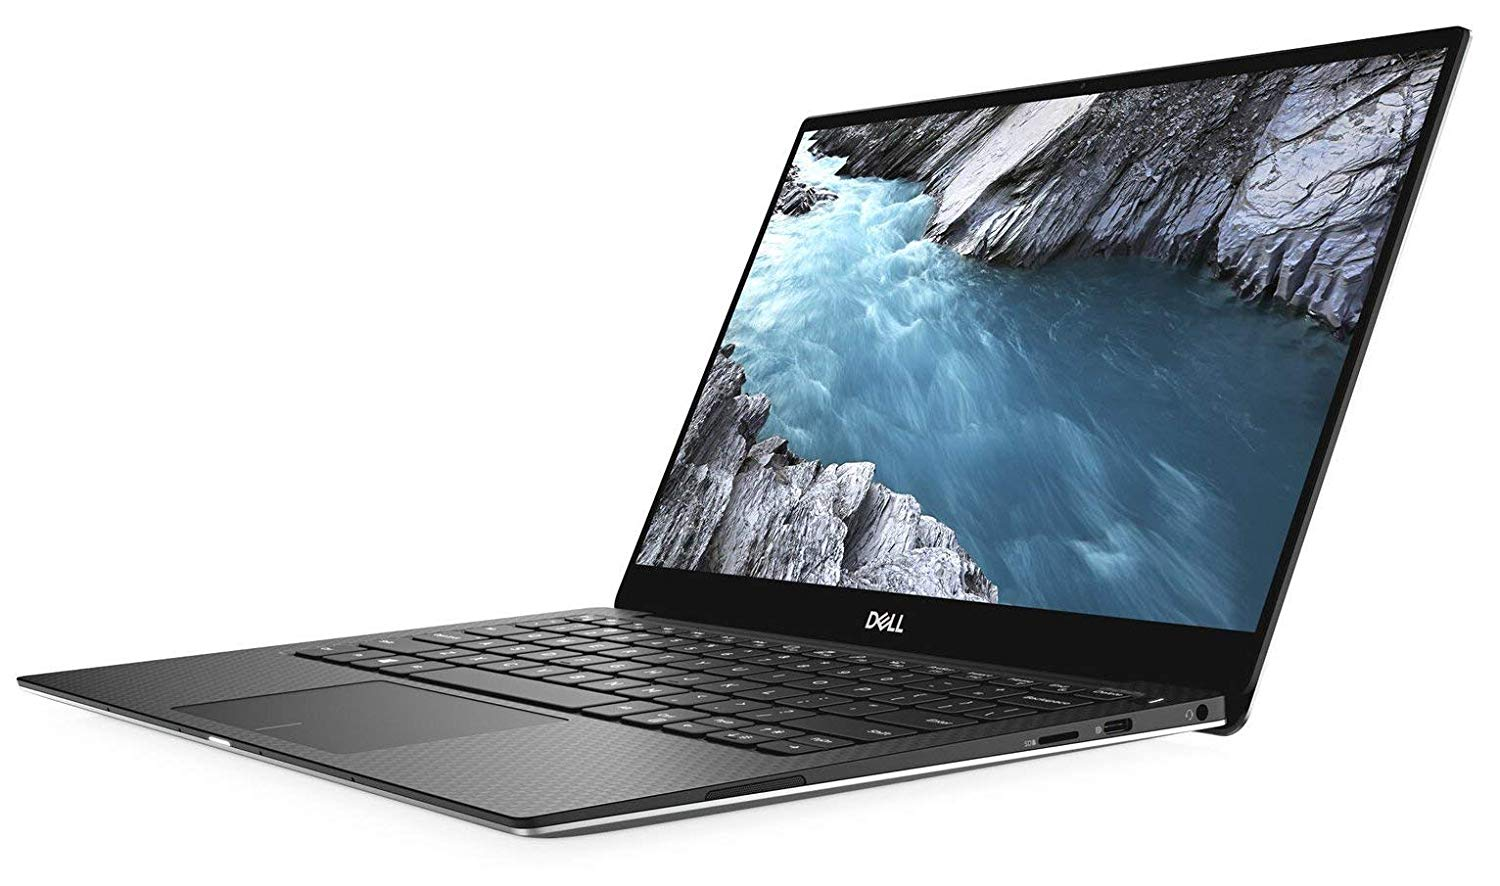 New 2019 DELL XPS 13 9380 Core i7-8565U 16GB 512GB PCie SSD 4K 3840x2160 Touch Screen Windows 10 pro